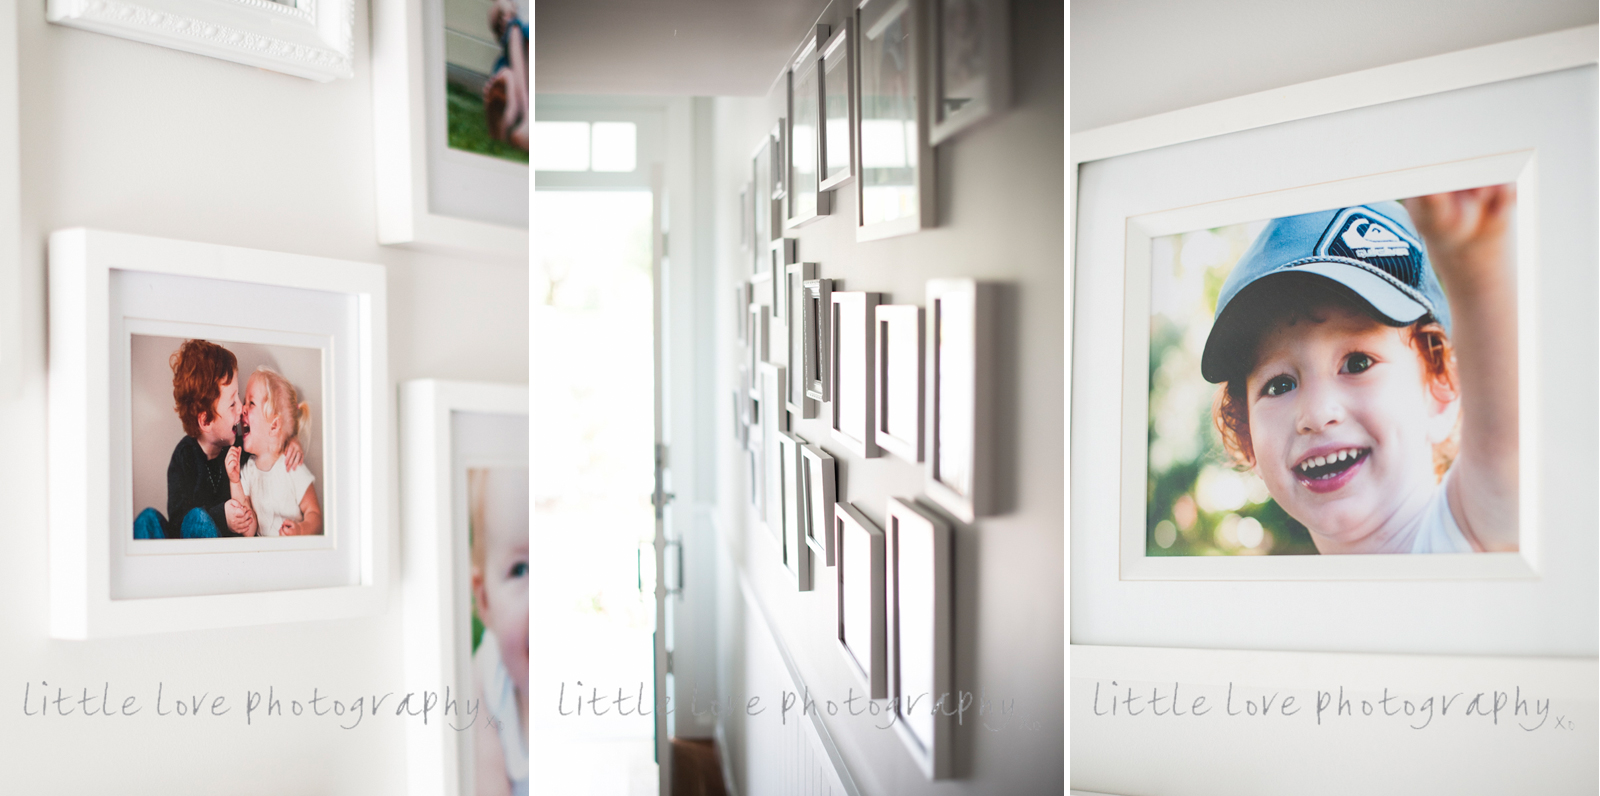 beautiful-image-of-family-photos-displayed-in-client's-house-by-little-love-photography